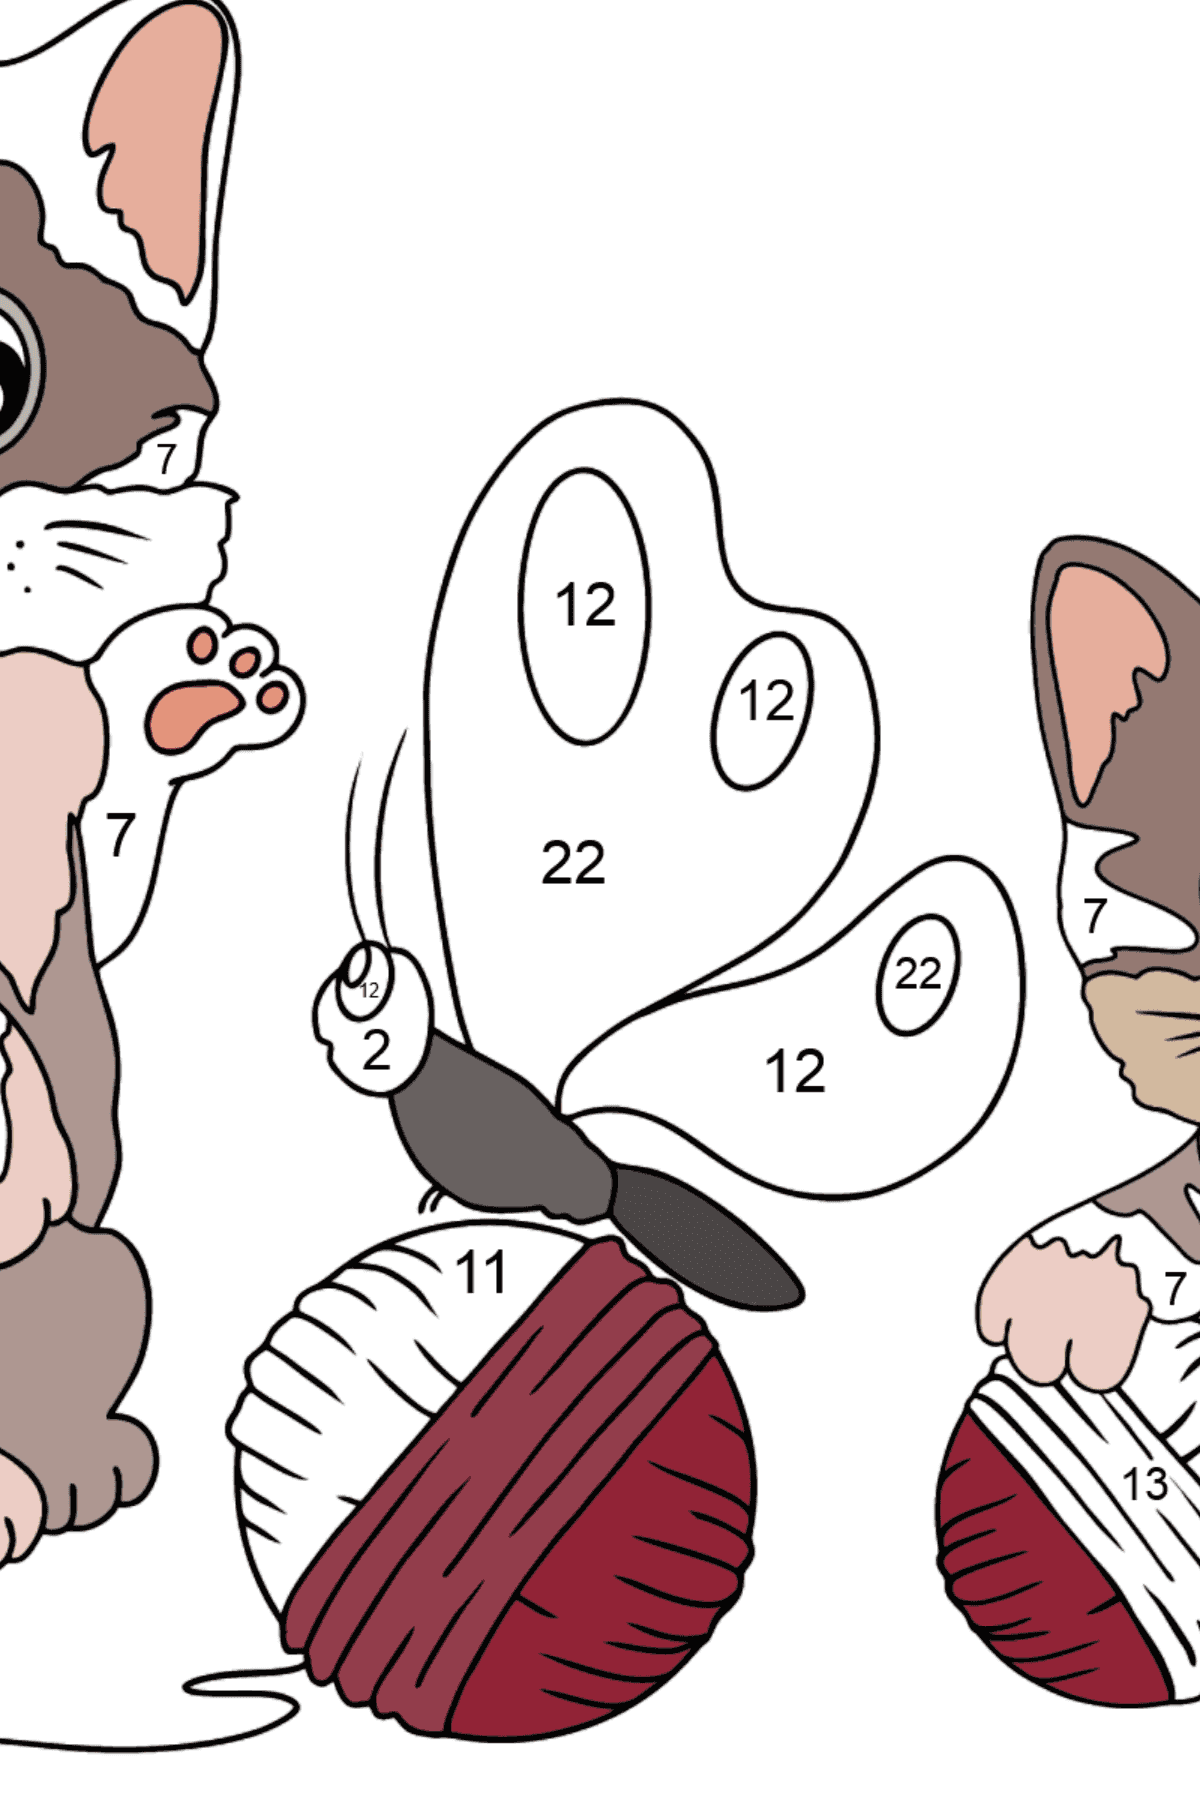 Coloring Page - Kittens are Playing with Threads - Coloring by Numbers for Kids